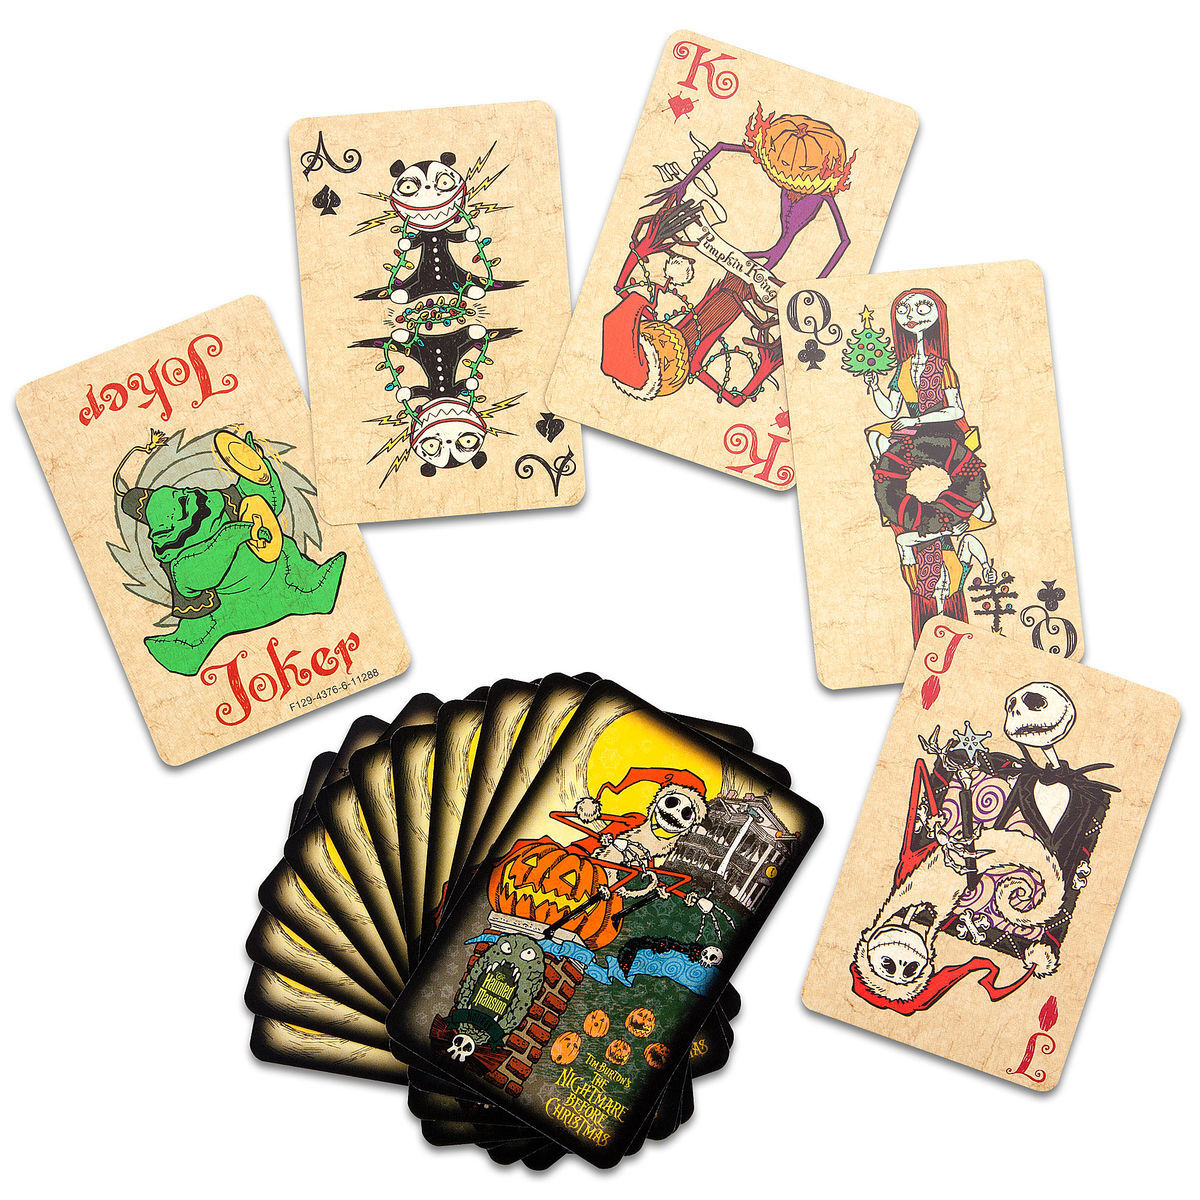 The Nightmare Before Christmas Playing Card Set | shopDisney